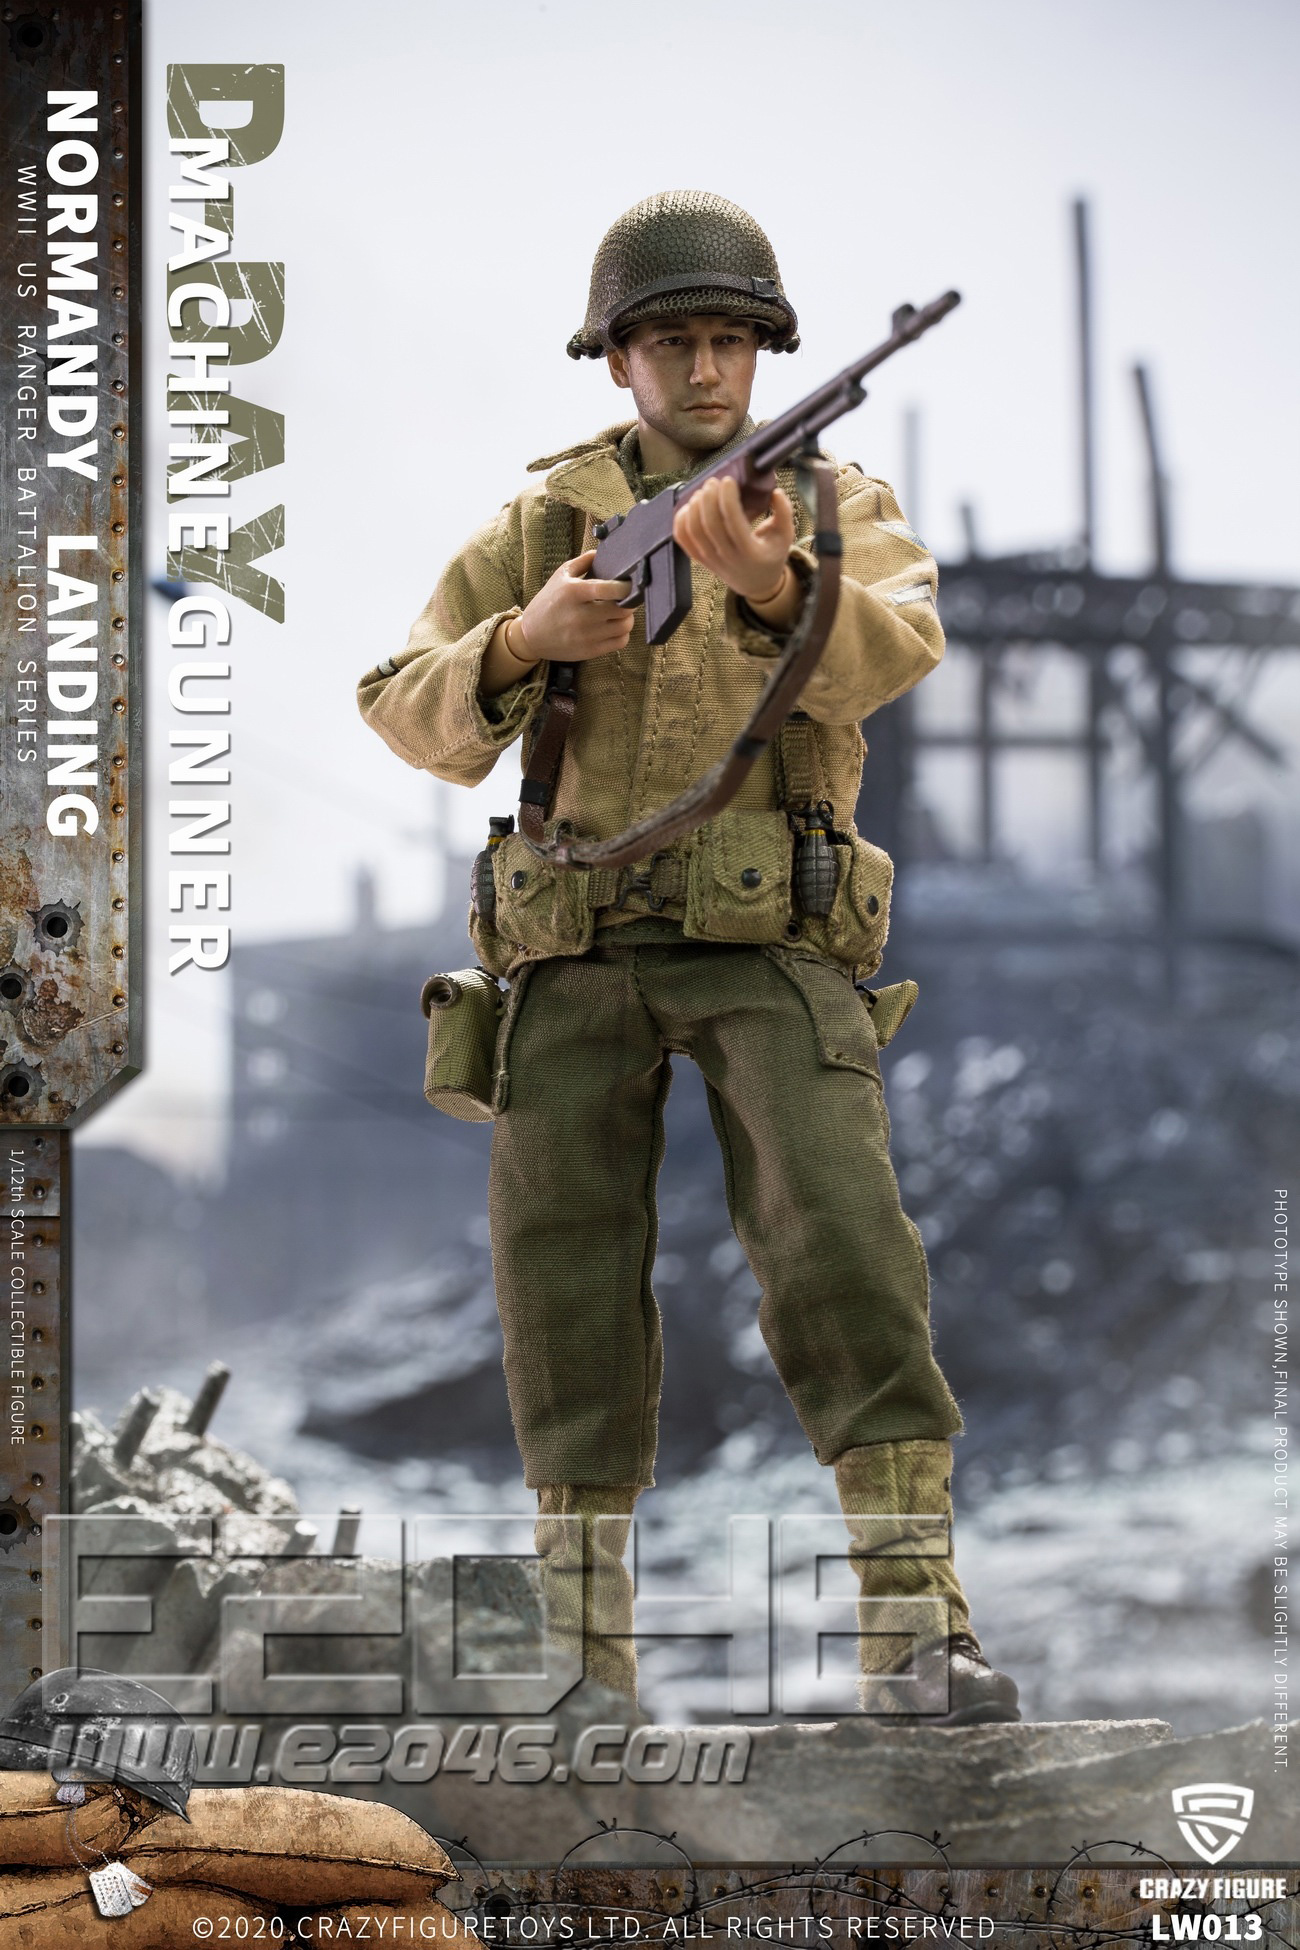 US Army Machine Gunners Of World War II (DOLL)